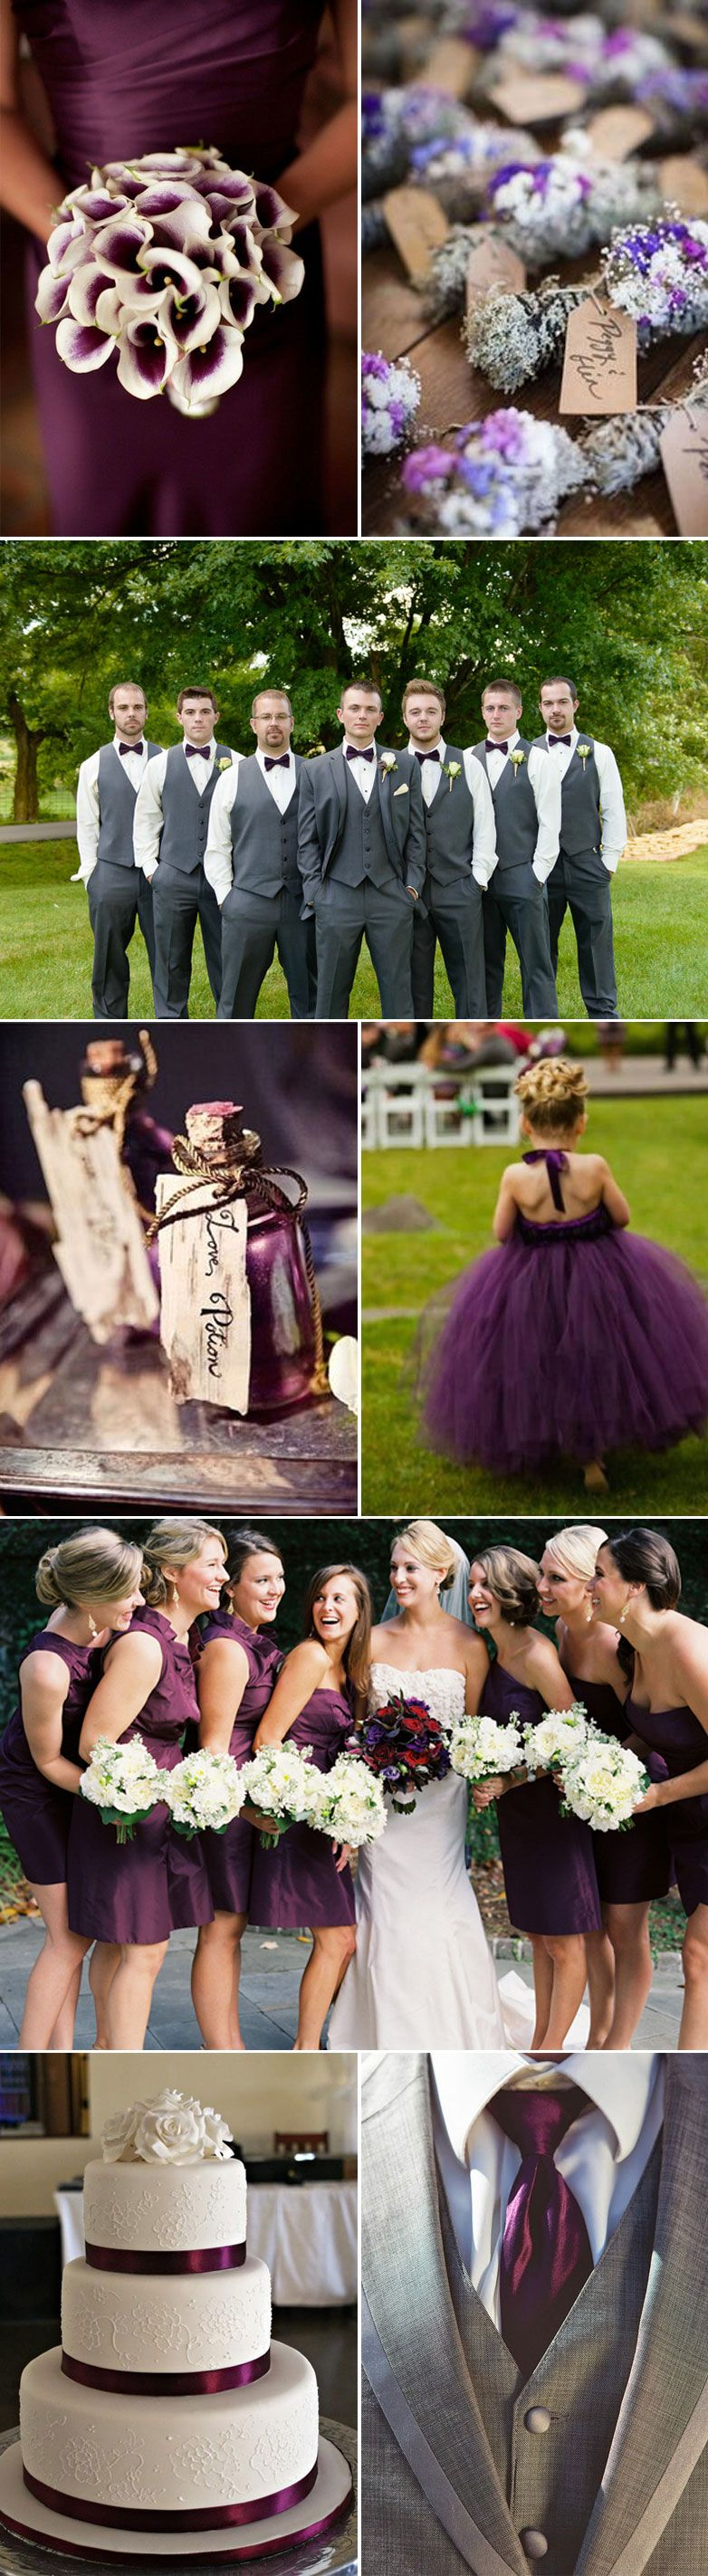 Perfect plum wedding ideas and inspiration wedding color perfect plum wedding ideas and inspiration i love the flower girl dress dhlflorist Gallery